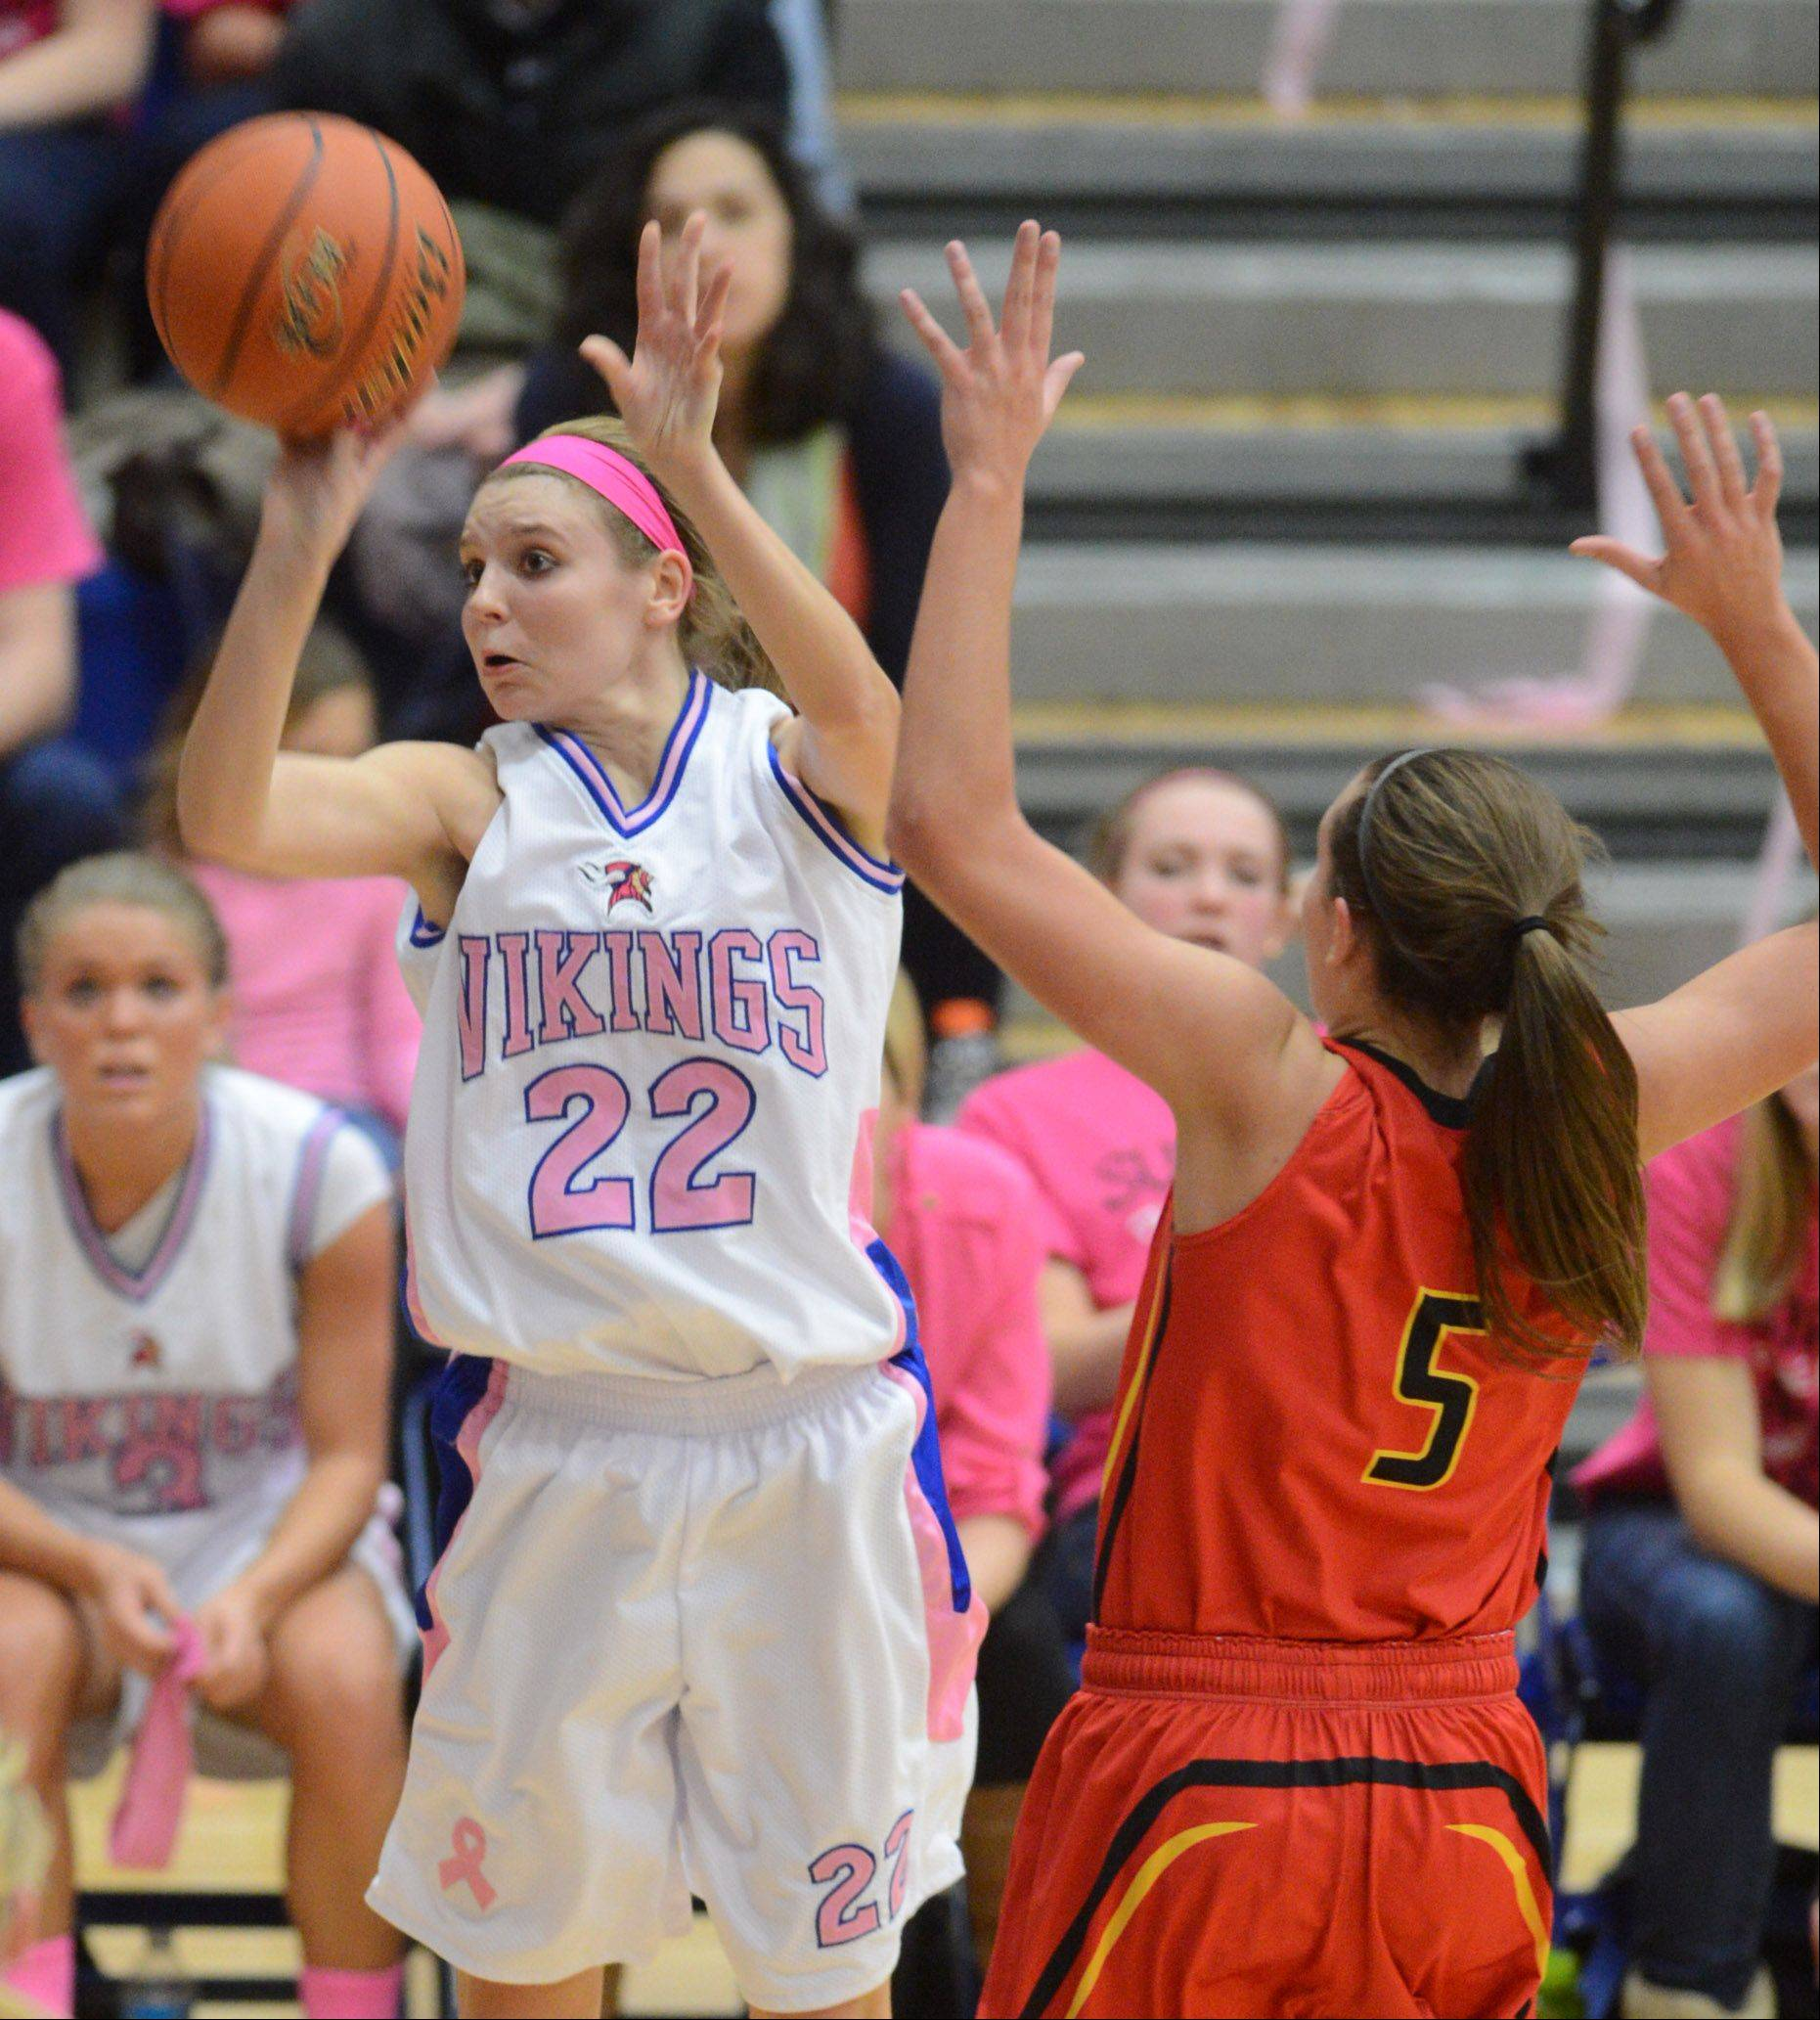 Geneva's Morgan Seberger (22) puts up a 3-pointer during Friday's game in Geneva.